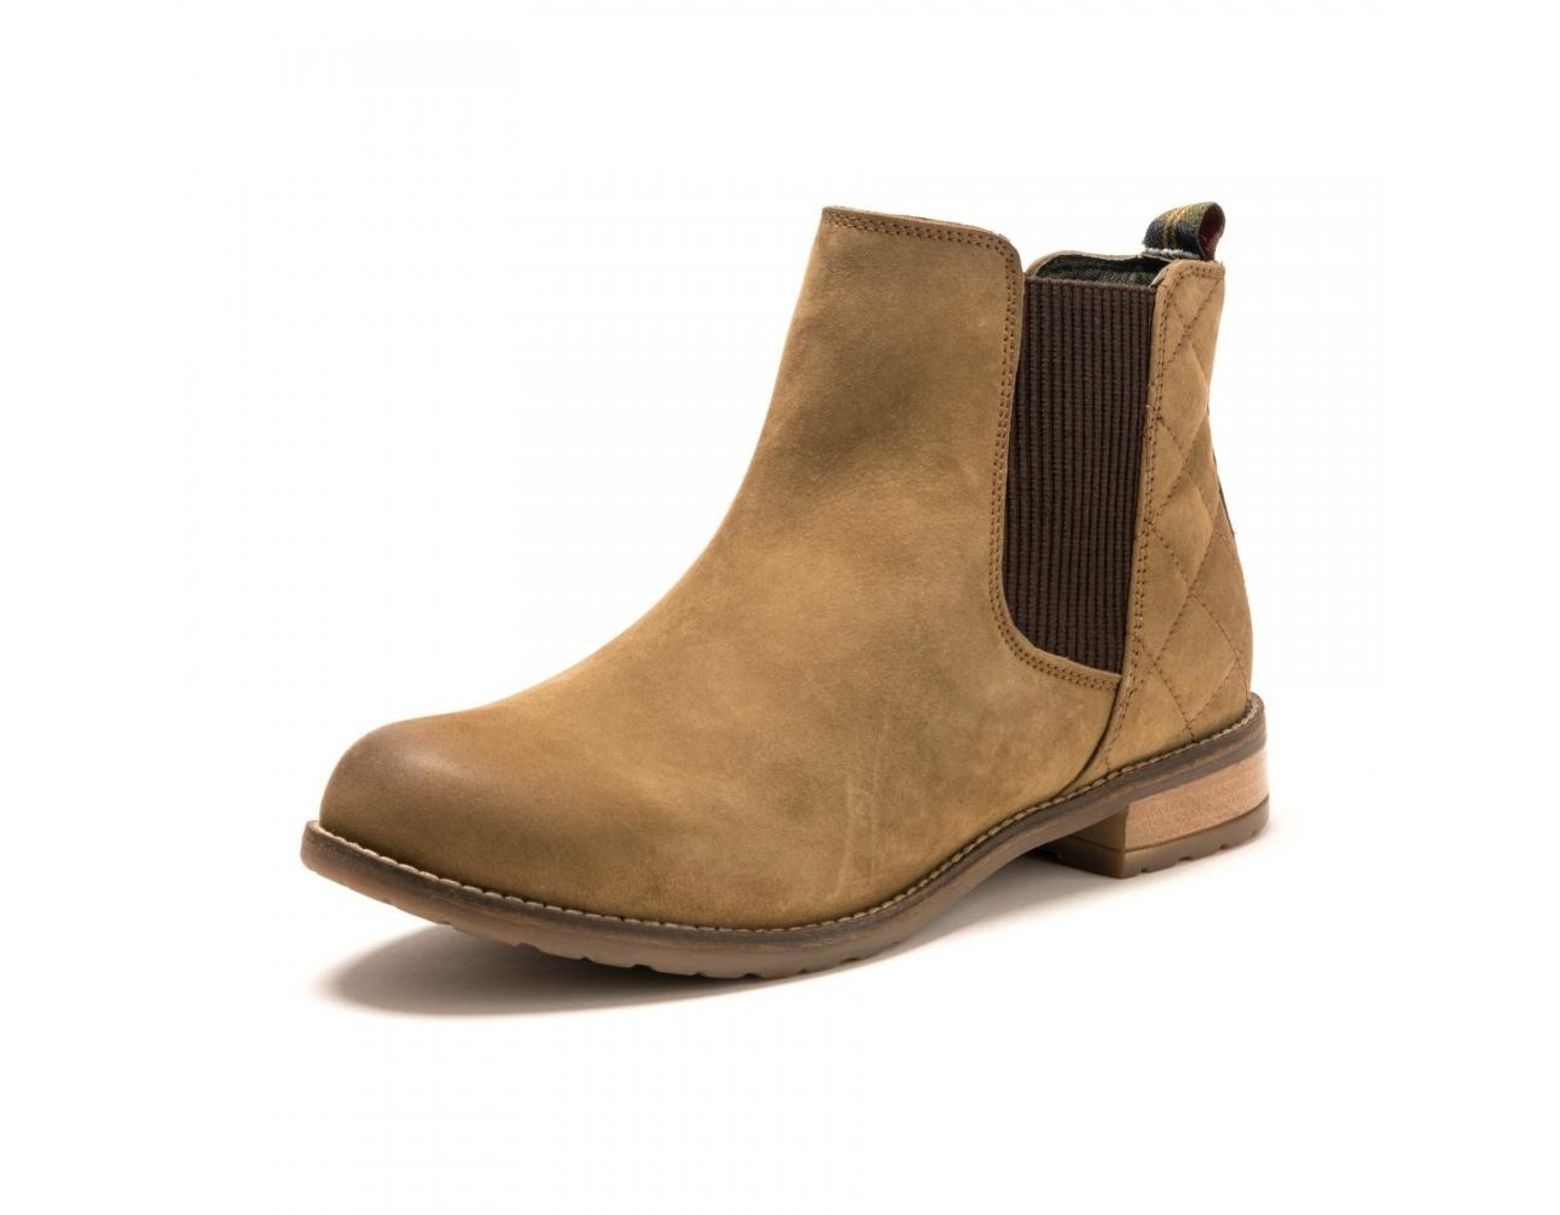 af84be364ce Brown Abigail Womens Chelsea Boots